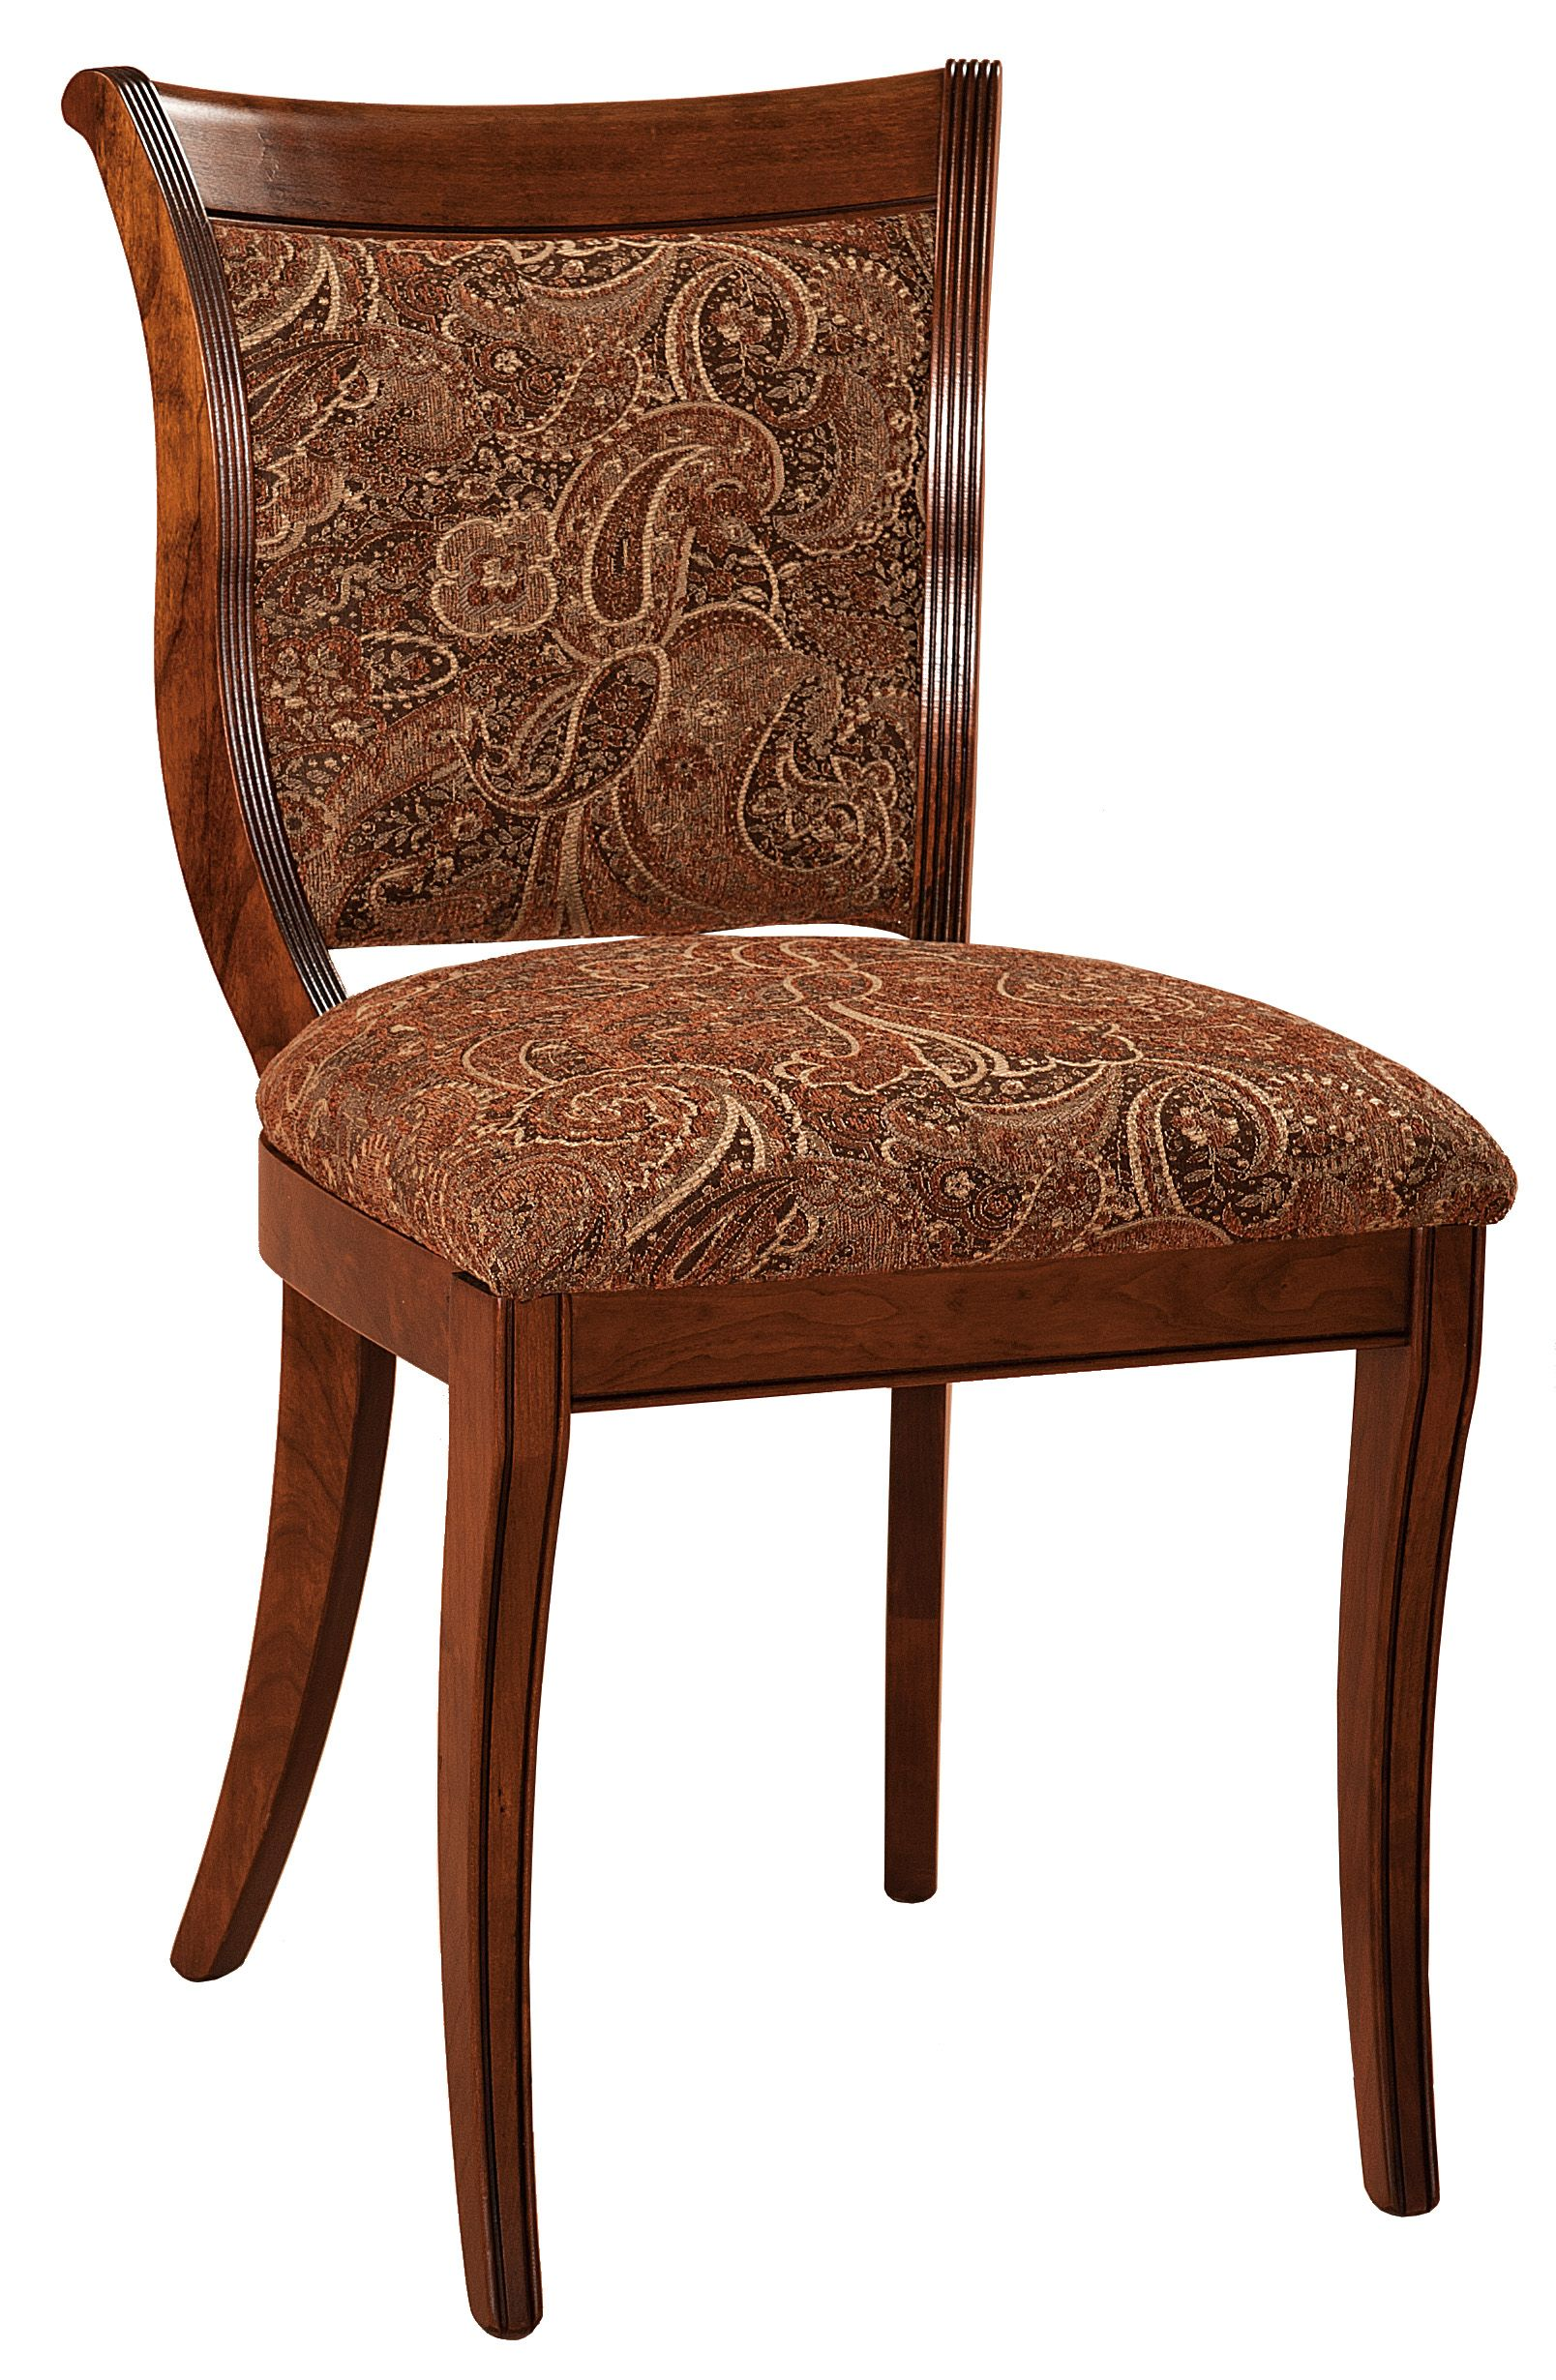 Upholstered Dining Room Chairs Amish Oak In Texas Dining Room